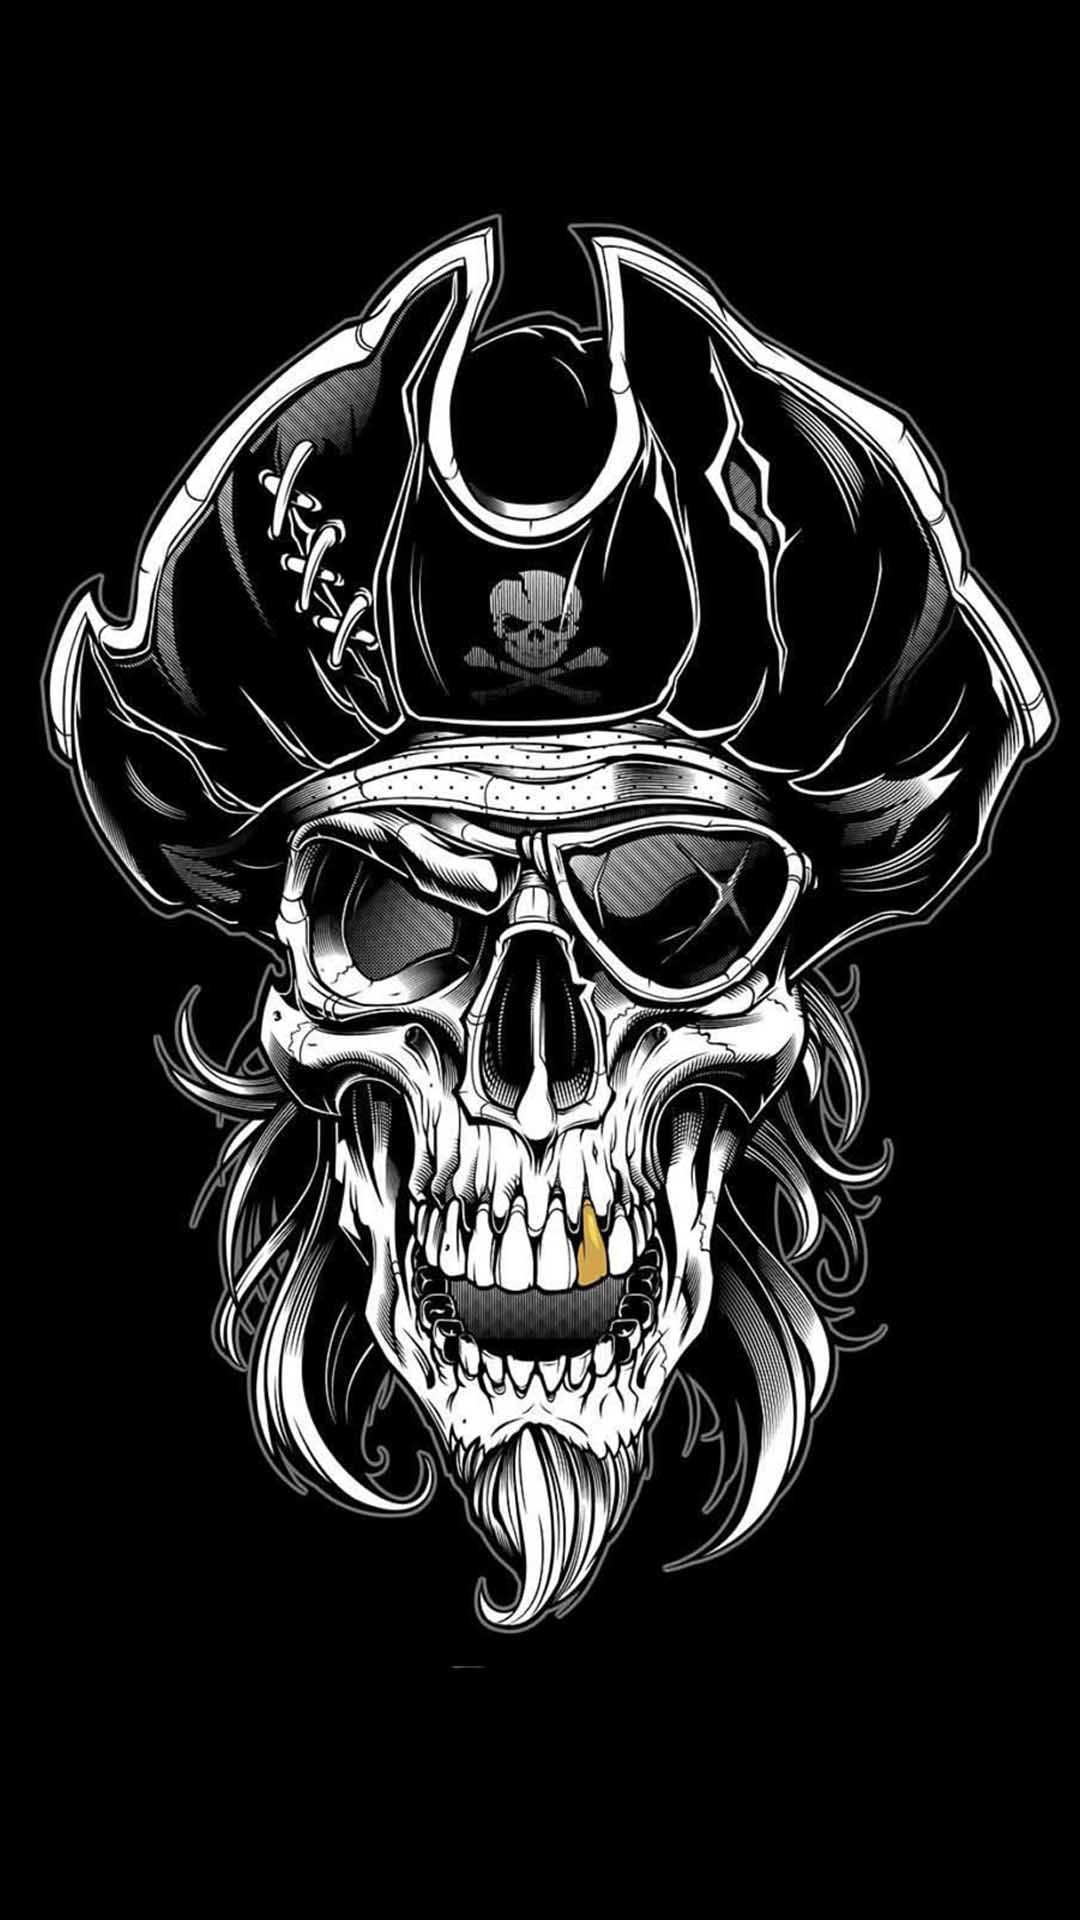 Skull Picture Hupages Download Iphone Wallpapers Skull Pictures Pirate Skull Tattoos Skull Wallpaper Tattoo wallpaper photos download